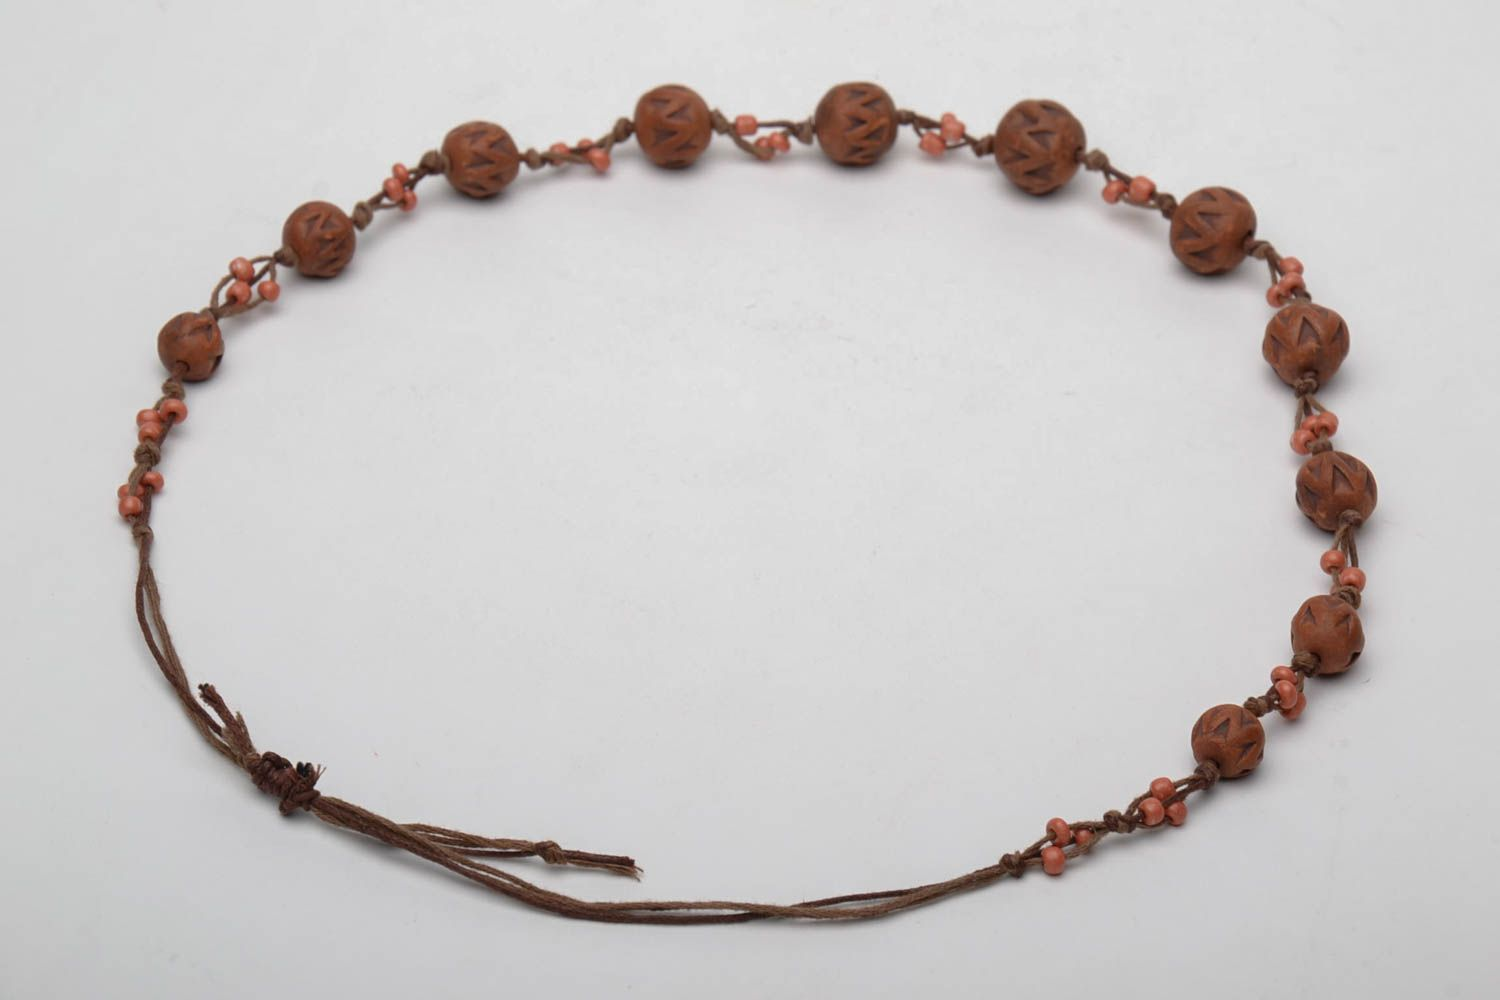 Brown ceramic bead necklace photo 5